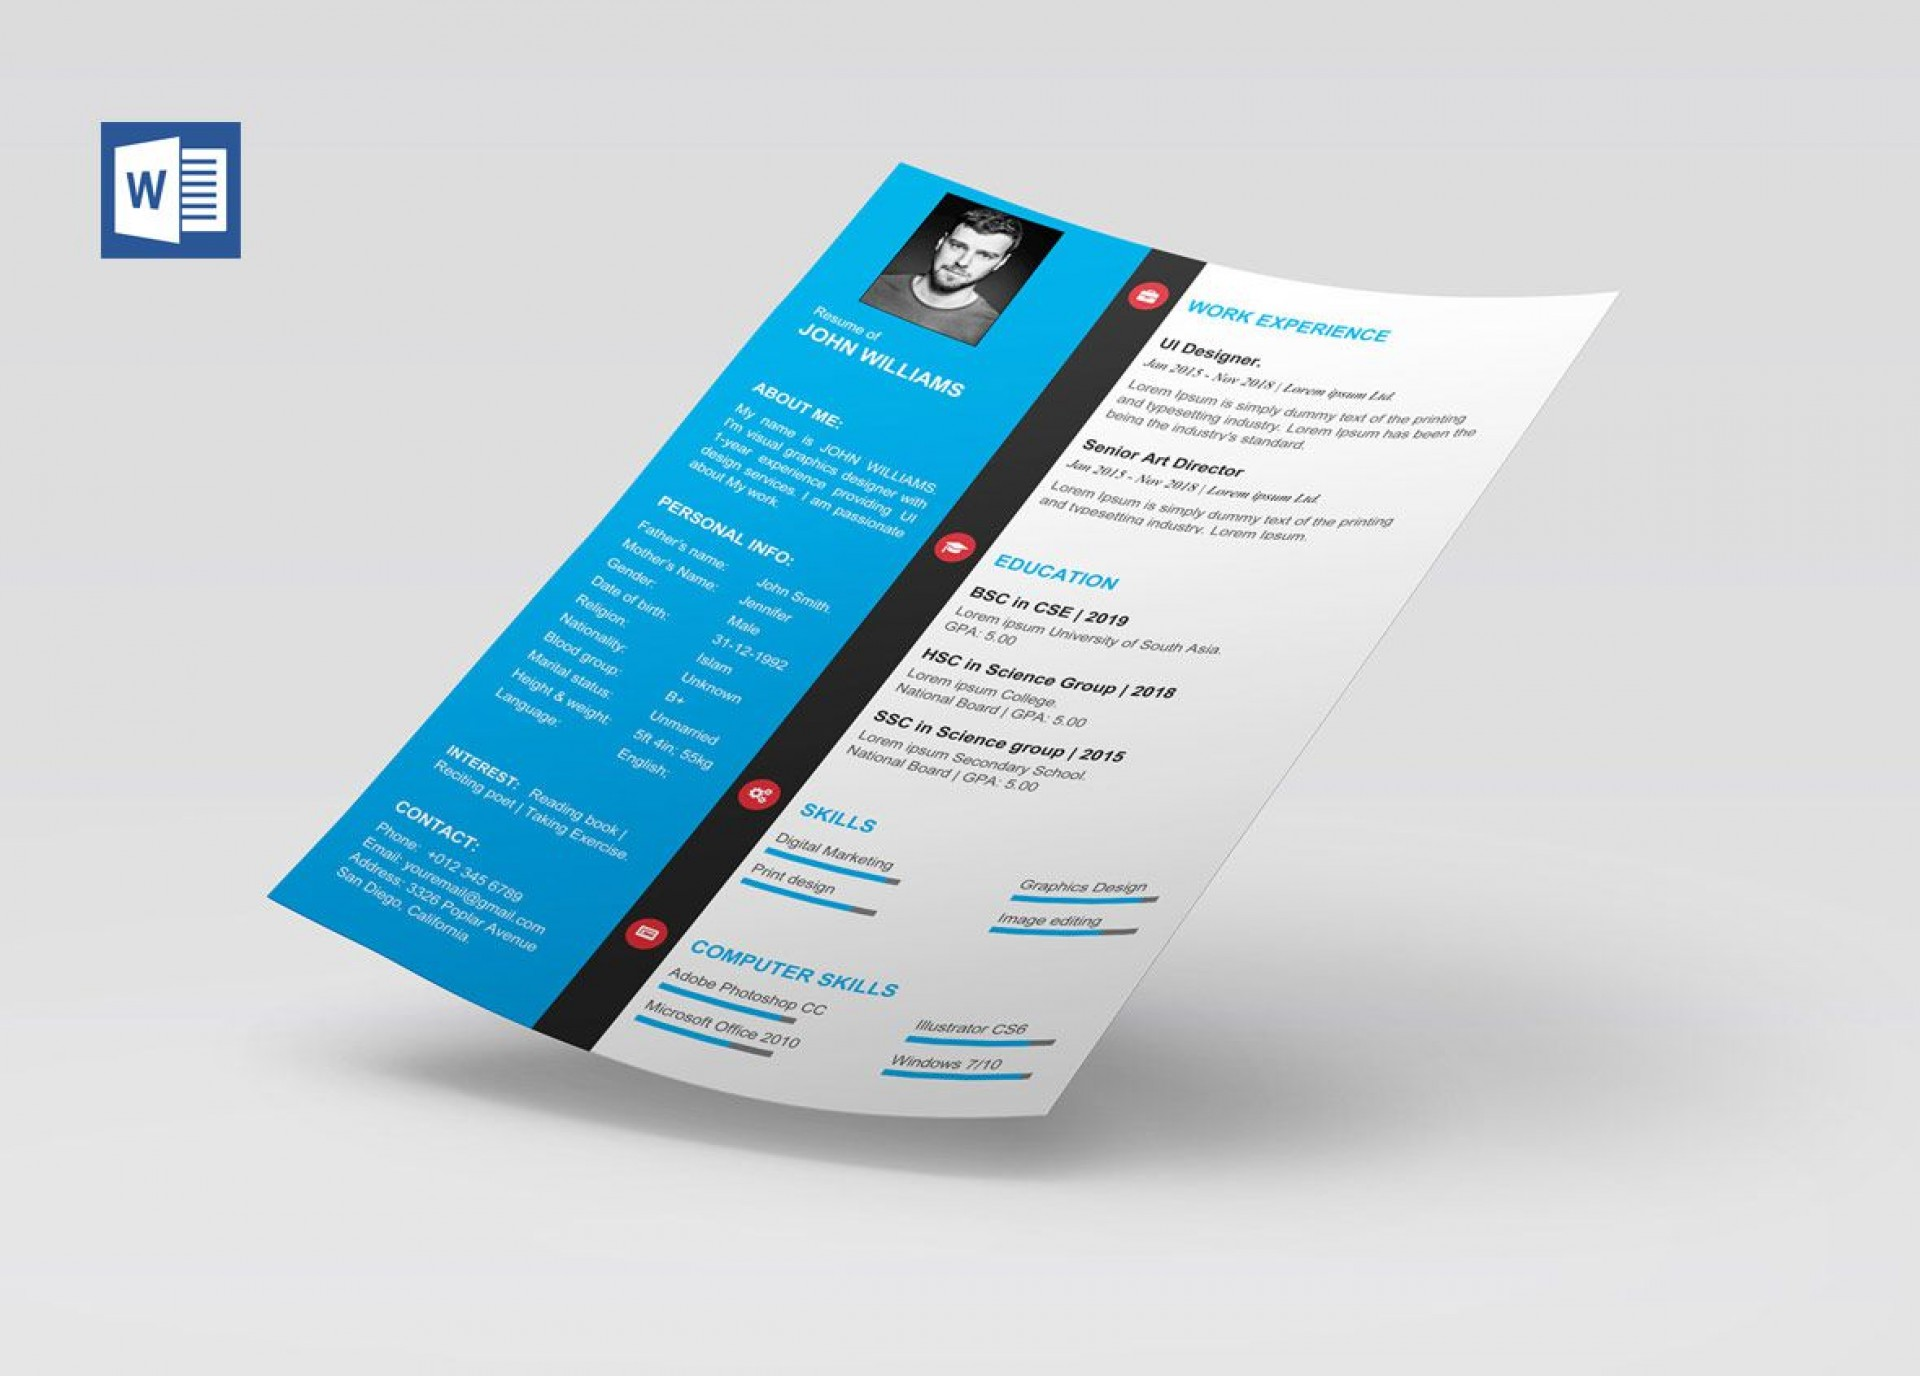 007 Impressive Resume Template Free Word Picture  Download 2020 Cv1920